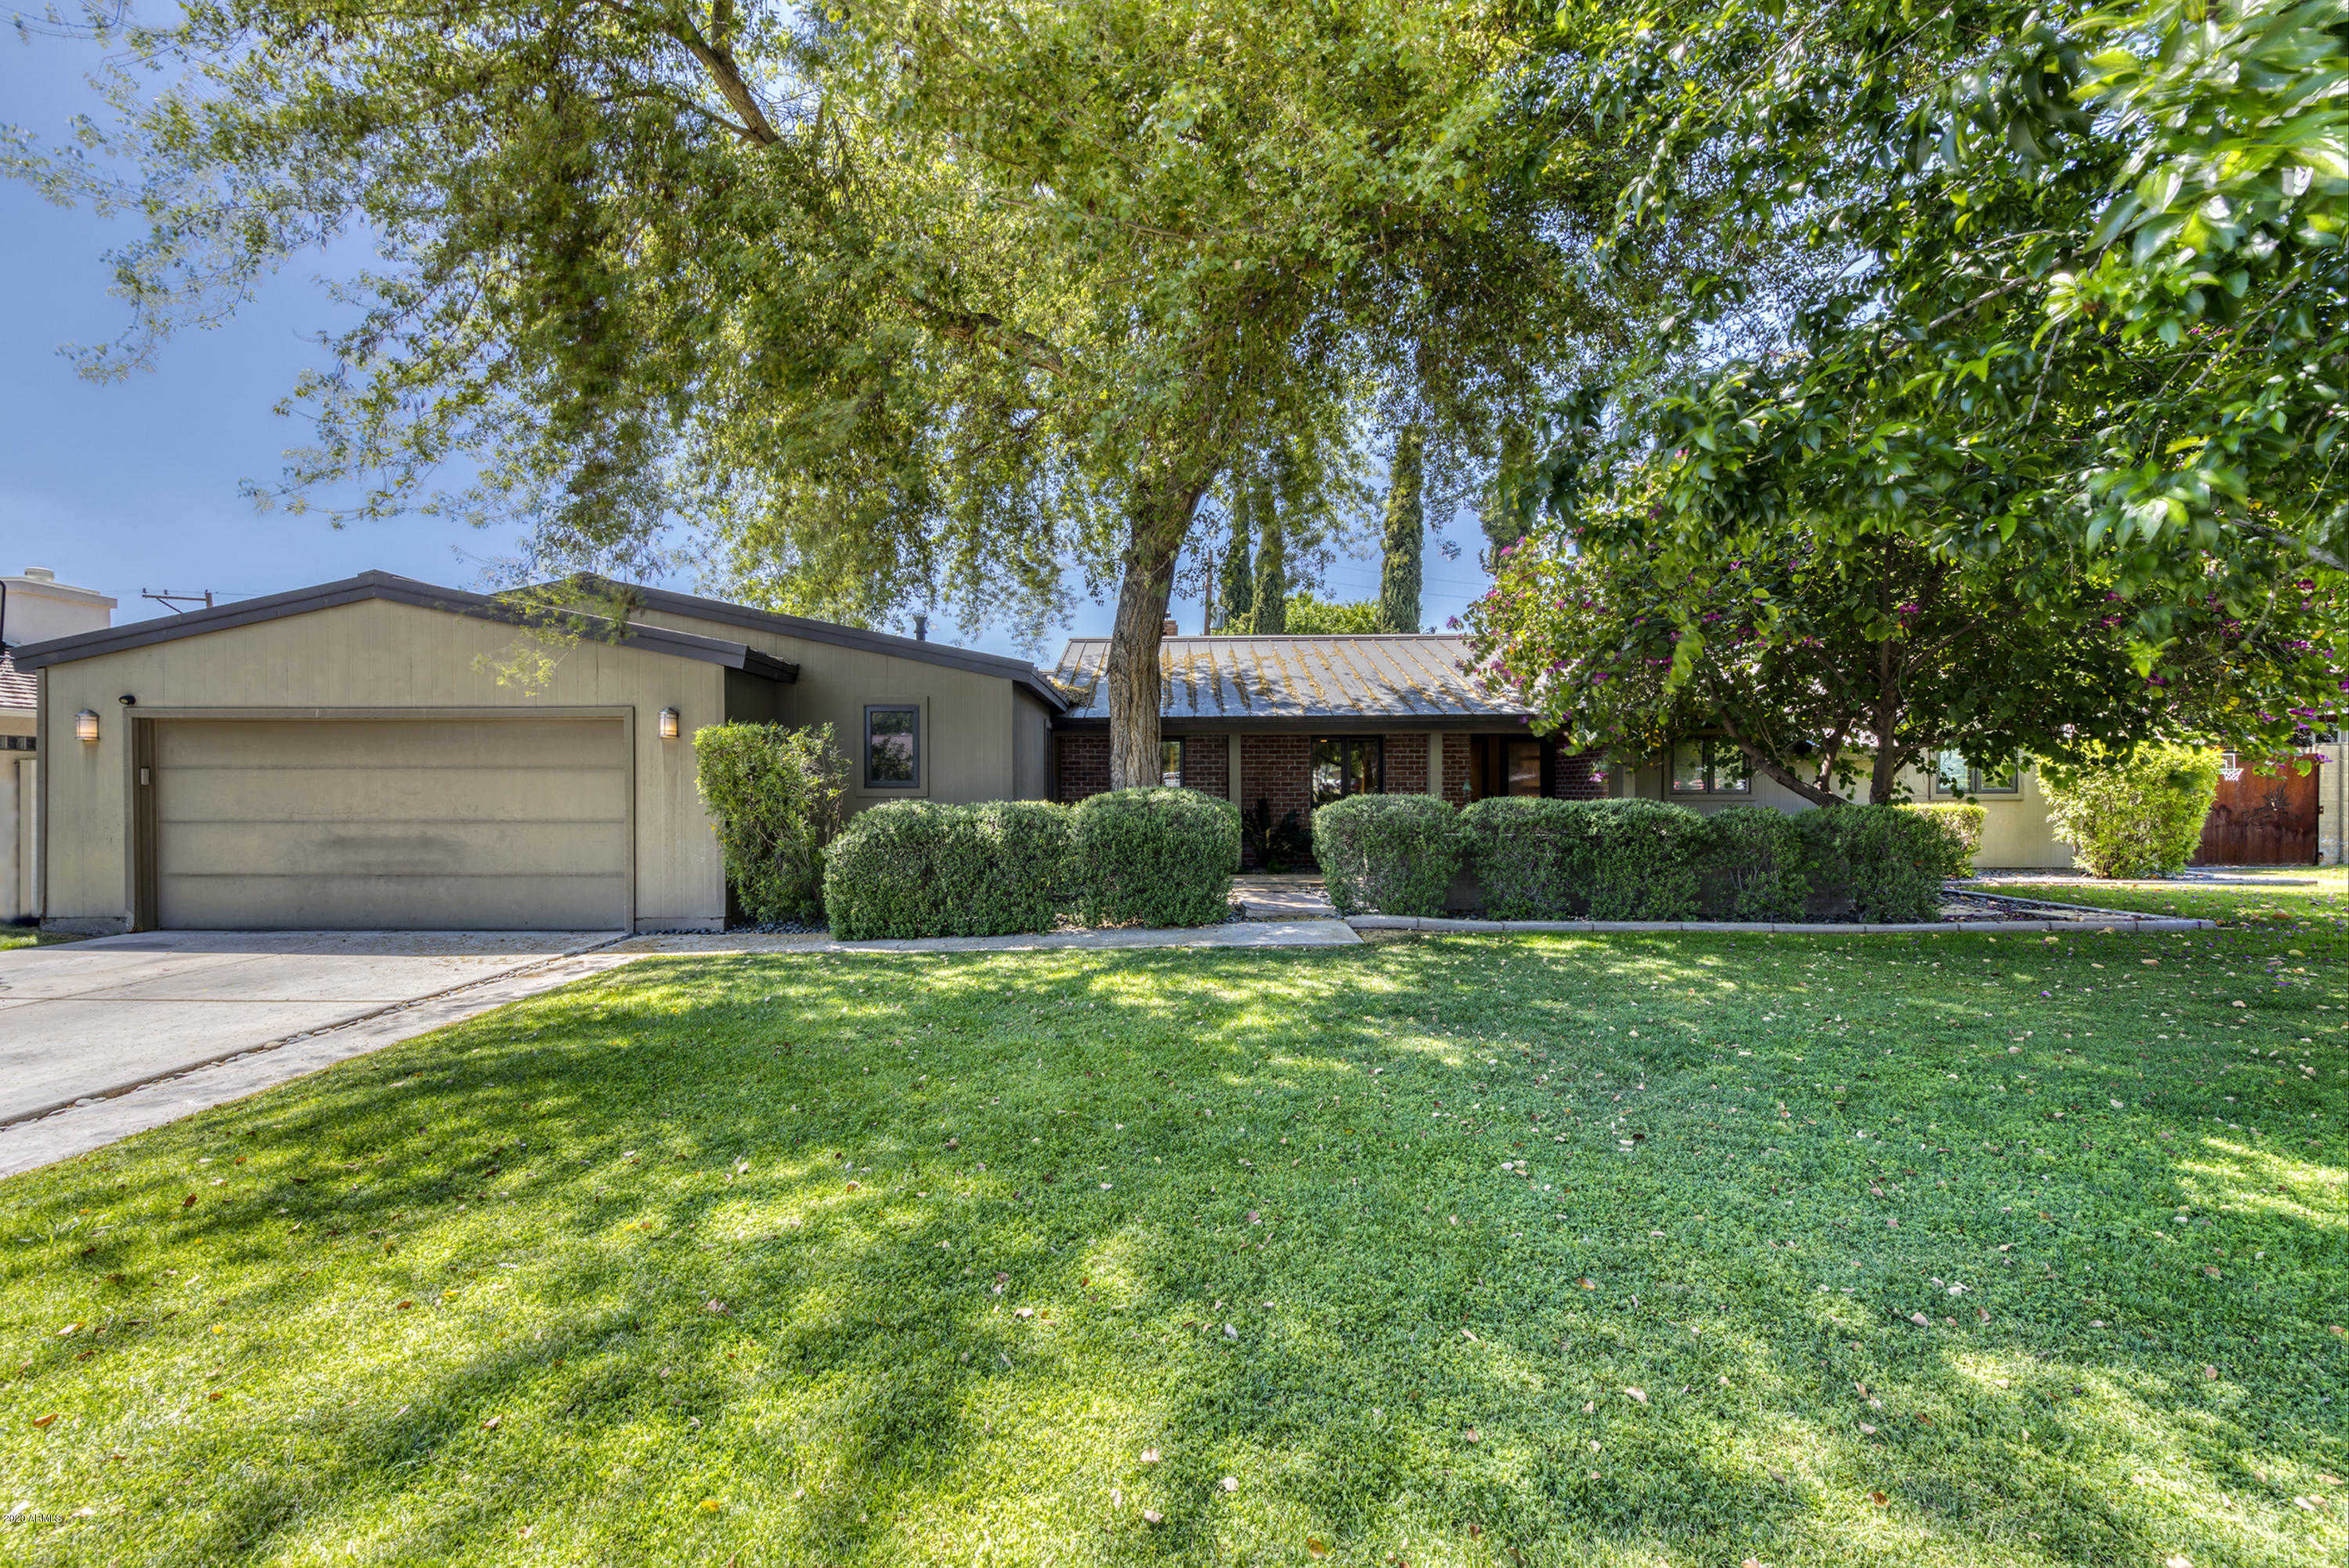 $1,150,000 - 5Br/3Ba - Home for Sale in North Central Groves, Phoenix